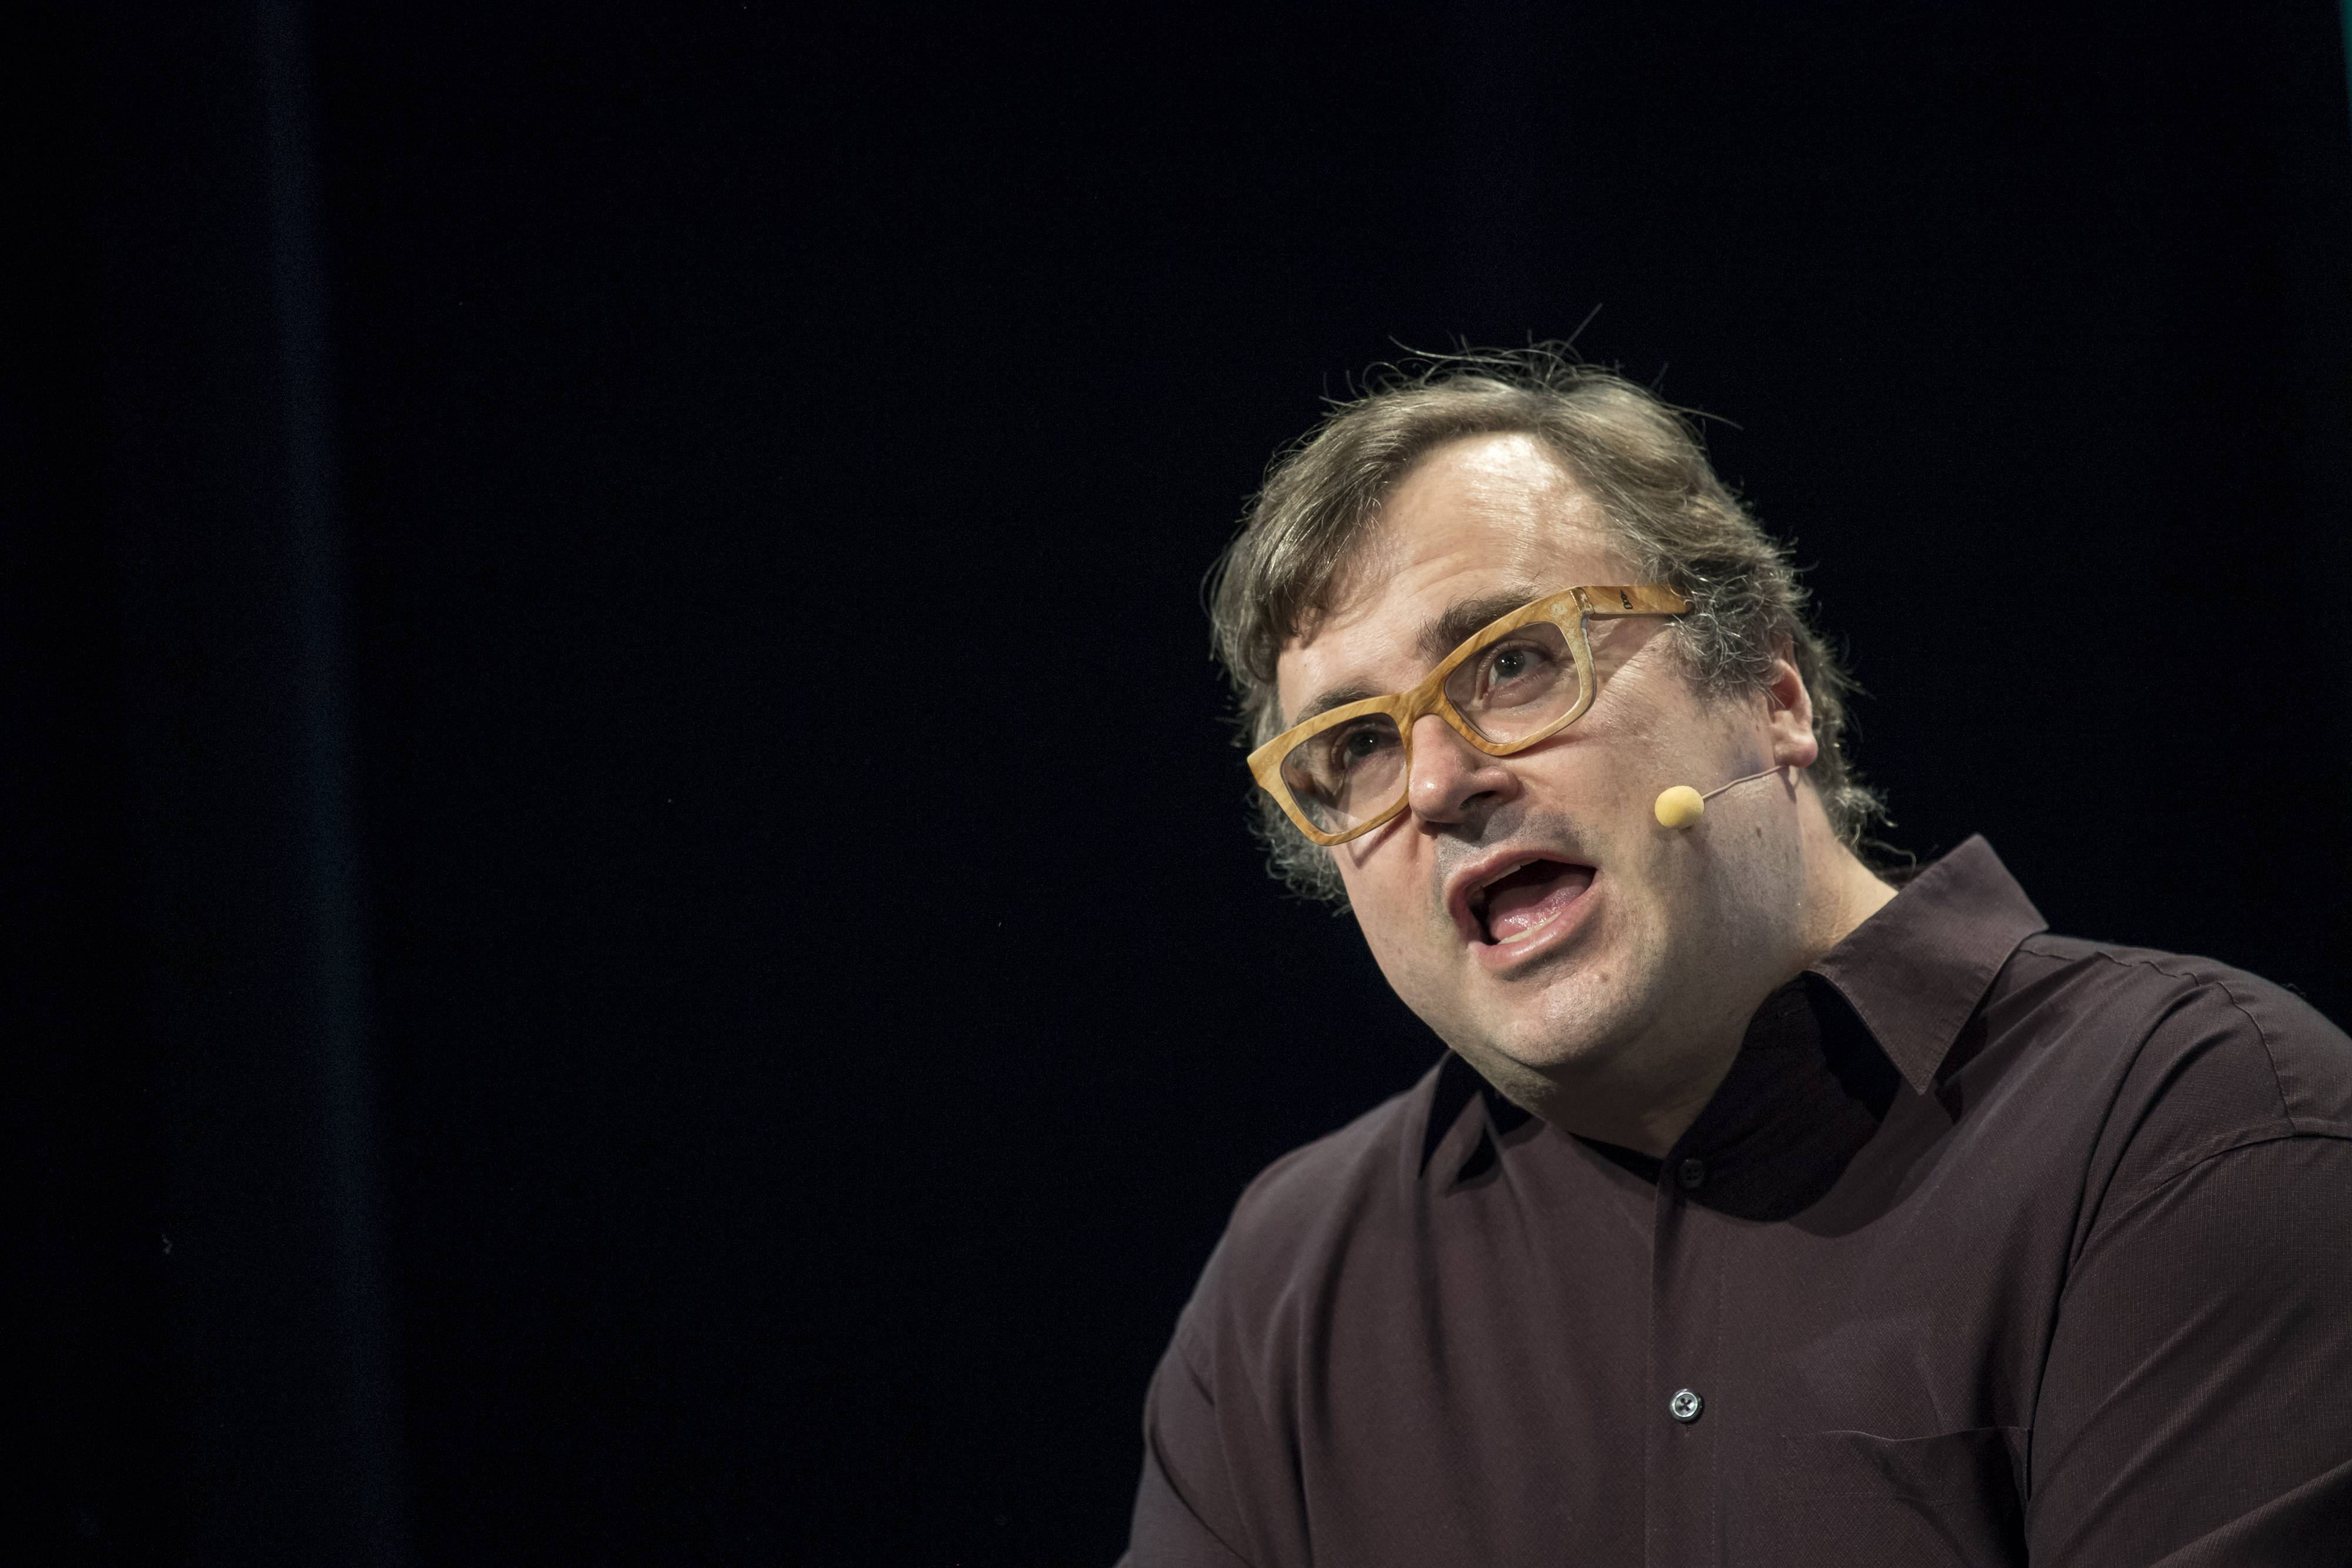 Reid Hoffman, chairman and co-founder of LinkedIn Corp., speaks during a Bloomberg Television interview at the TechCrunch Disrupt San Francisco 2016 Summit in San Francisco on Tuesday. MUST CREDIT: Bloomberg photo by David Paul Morris.